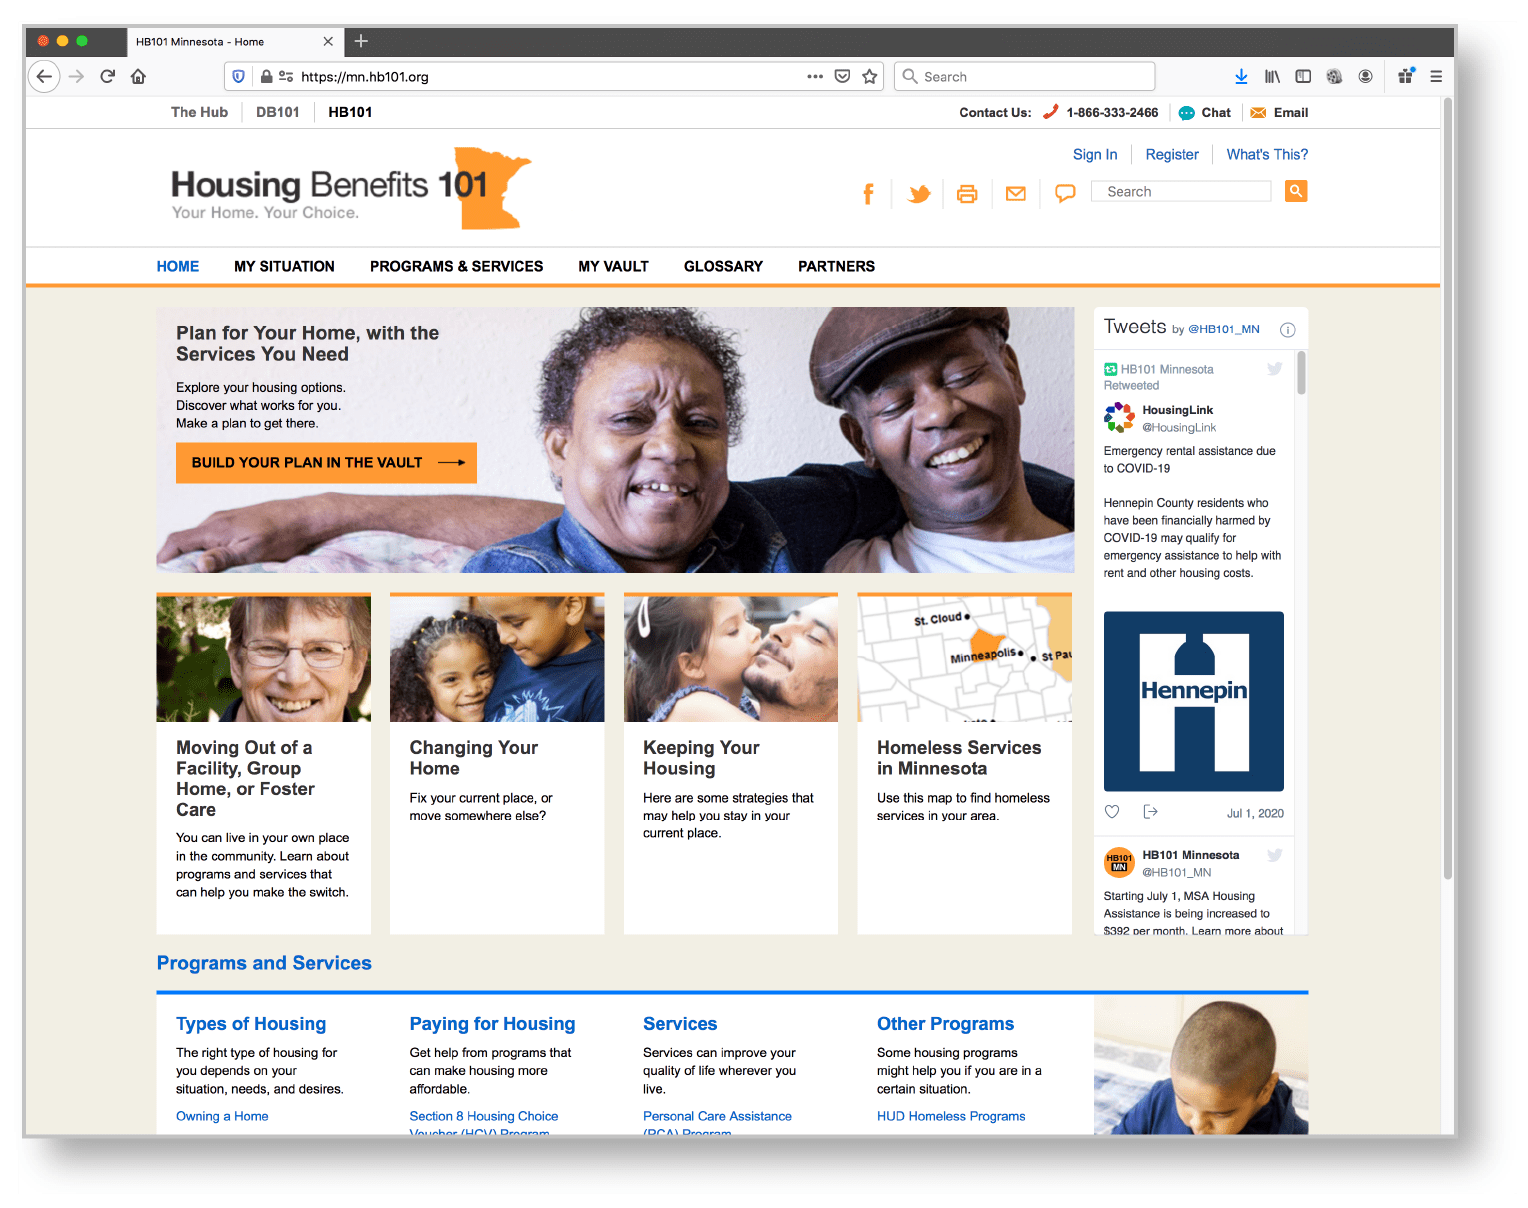 A screenshot of the home page of the Housing Benefits 101 web page.